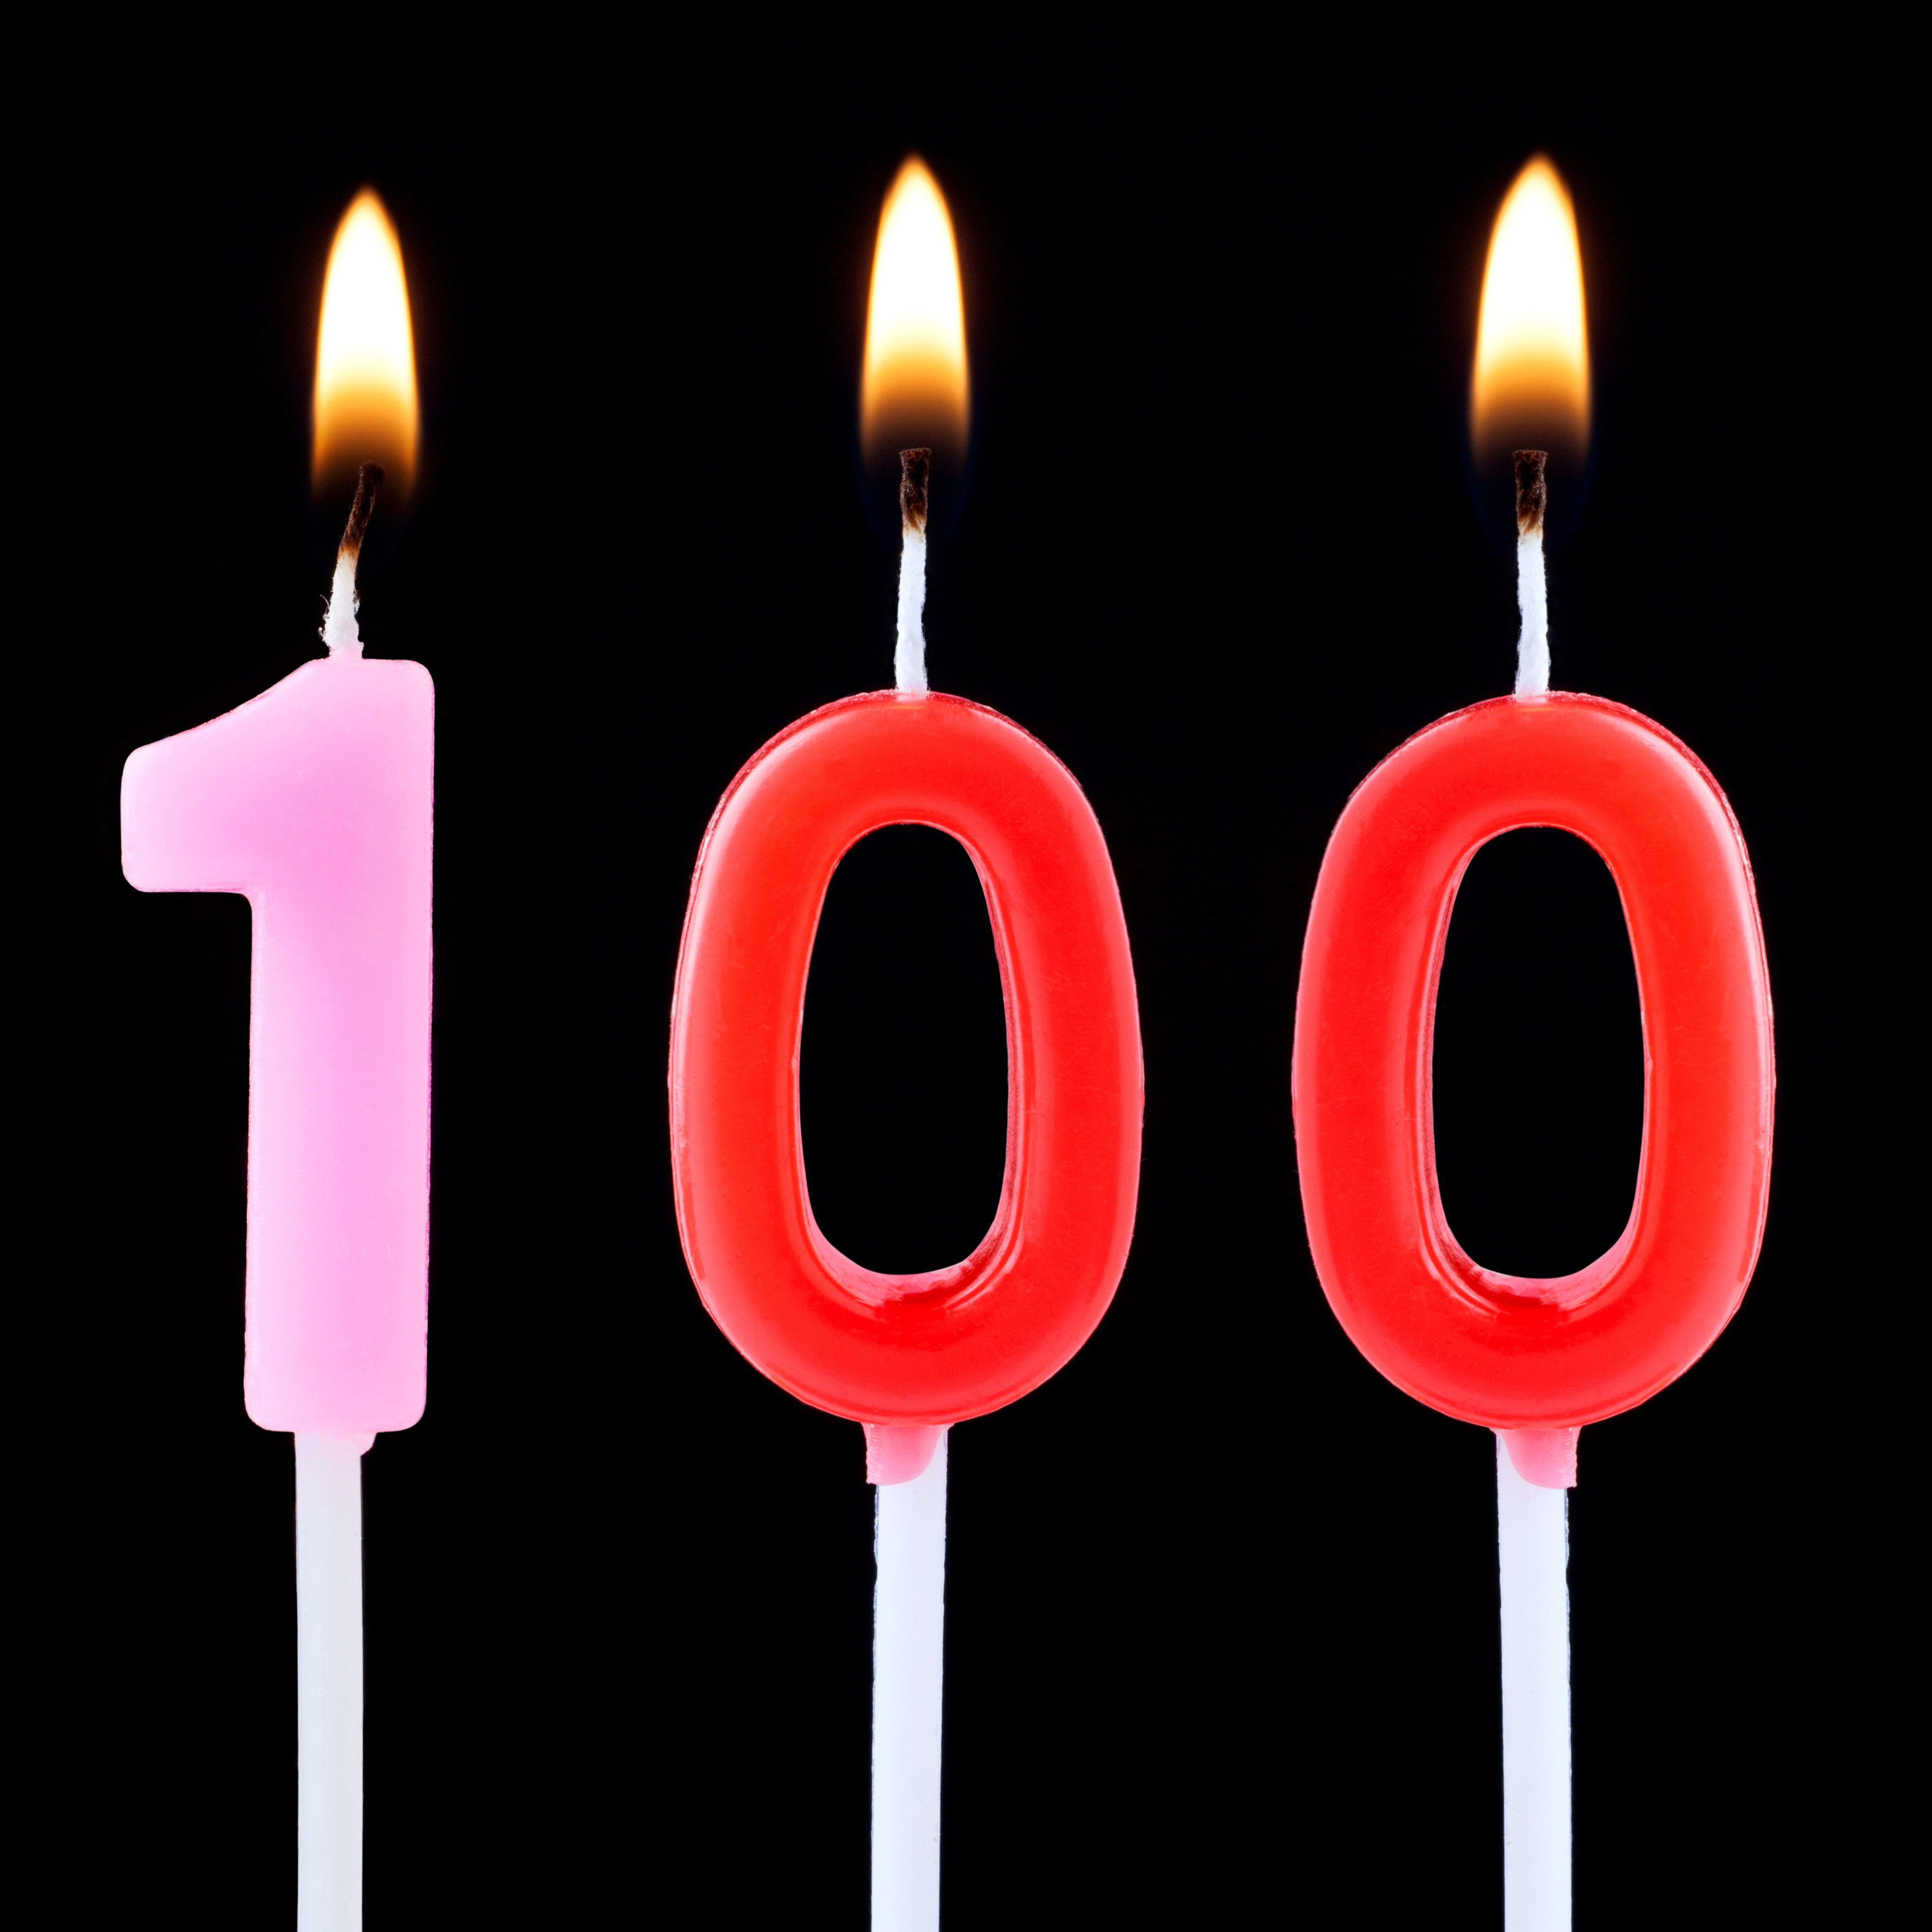 Number one hundred birthday candle isolated on a black background.